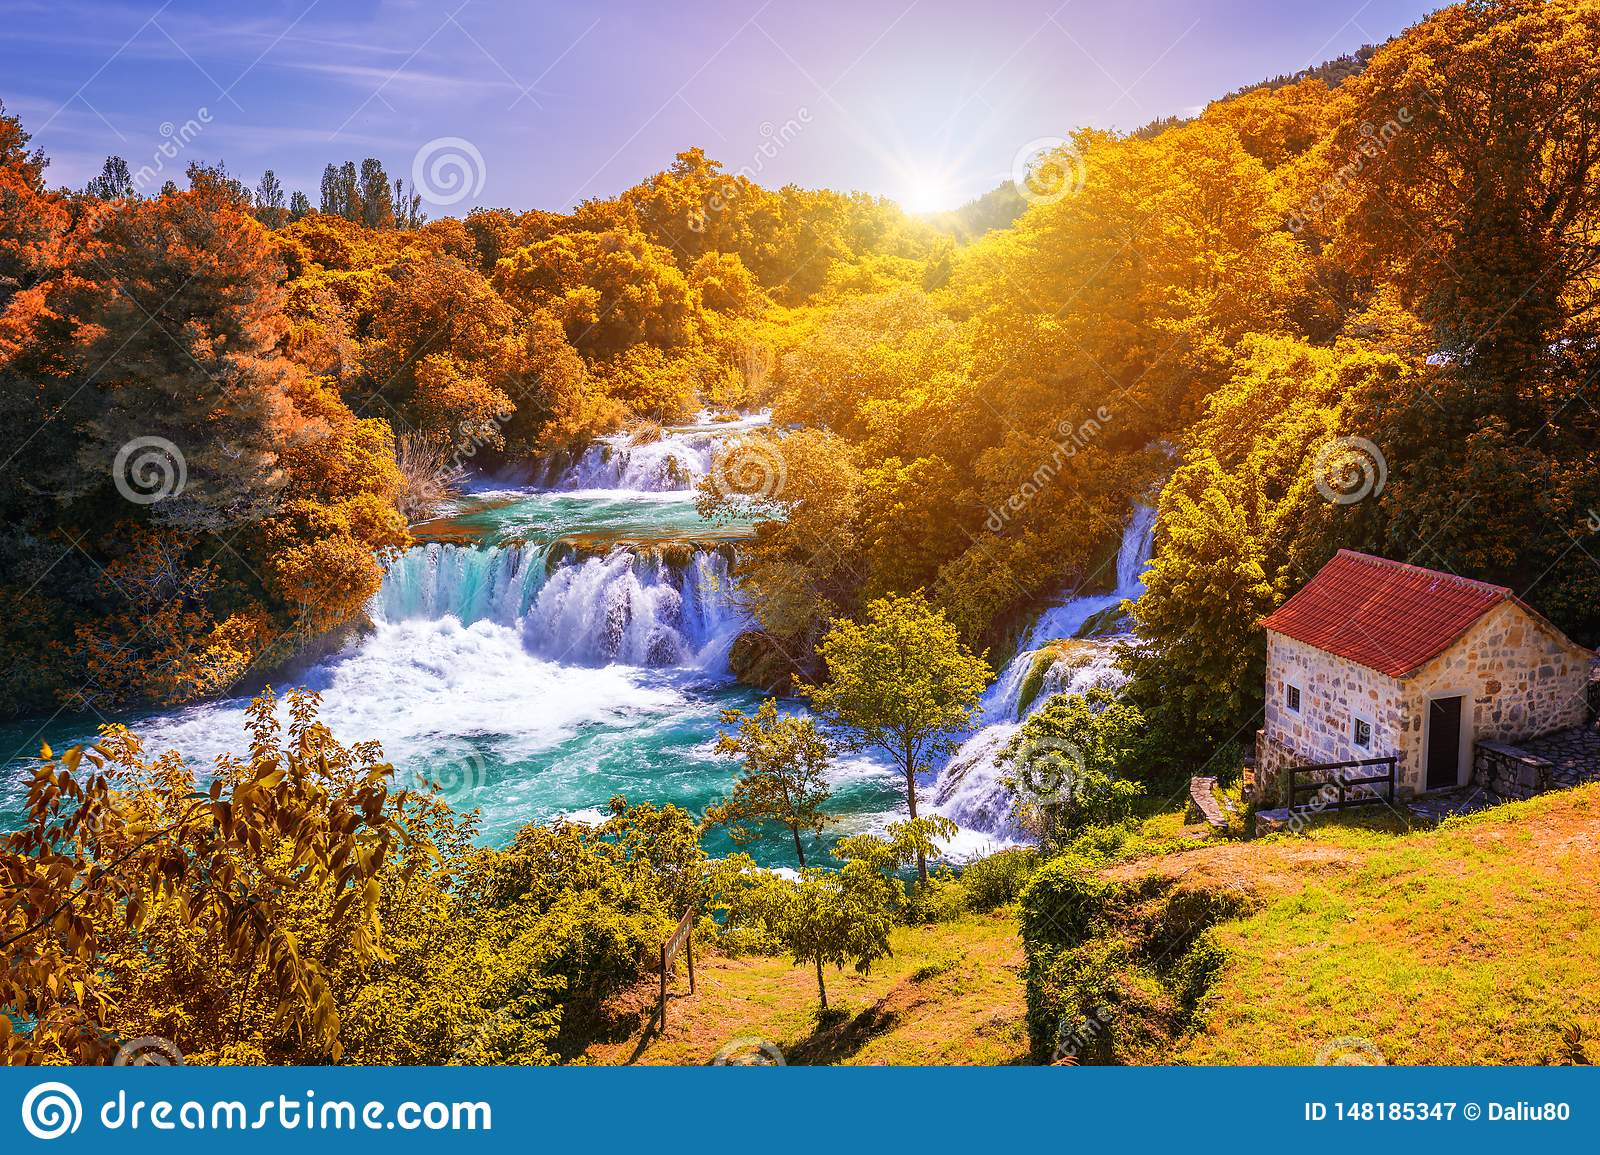 Krka national park with autumn colors of trees, famous travel destination in Dalmatia of Croatia. Krka waterfalls in the Krka